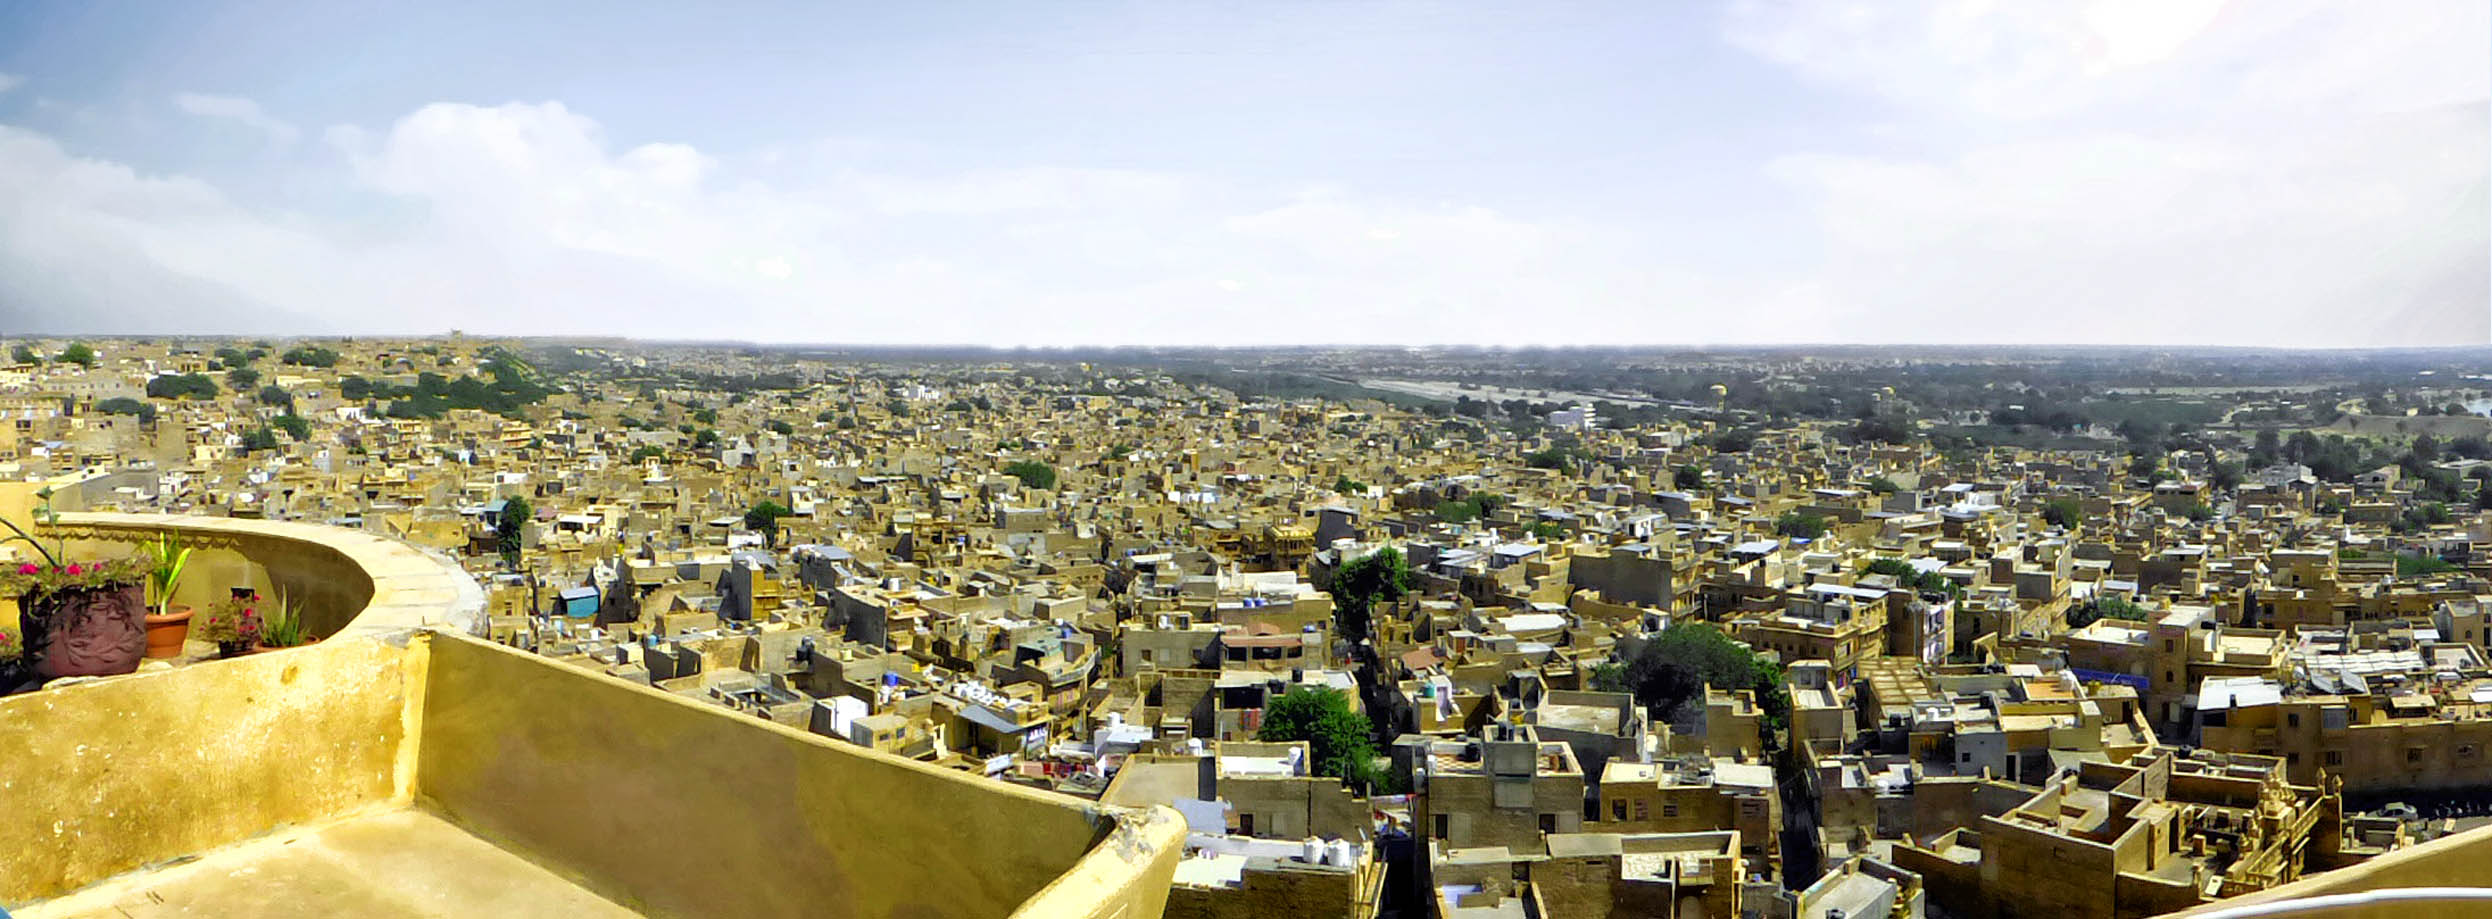 Panorama of a town